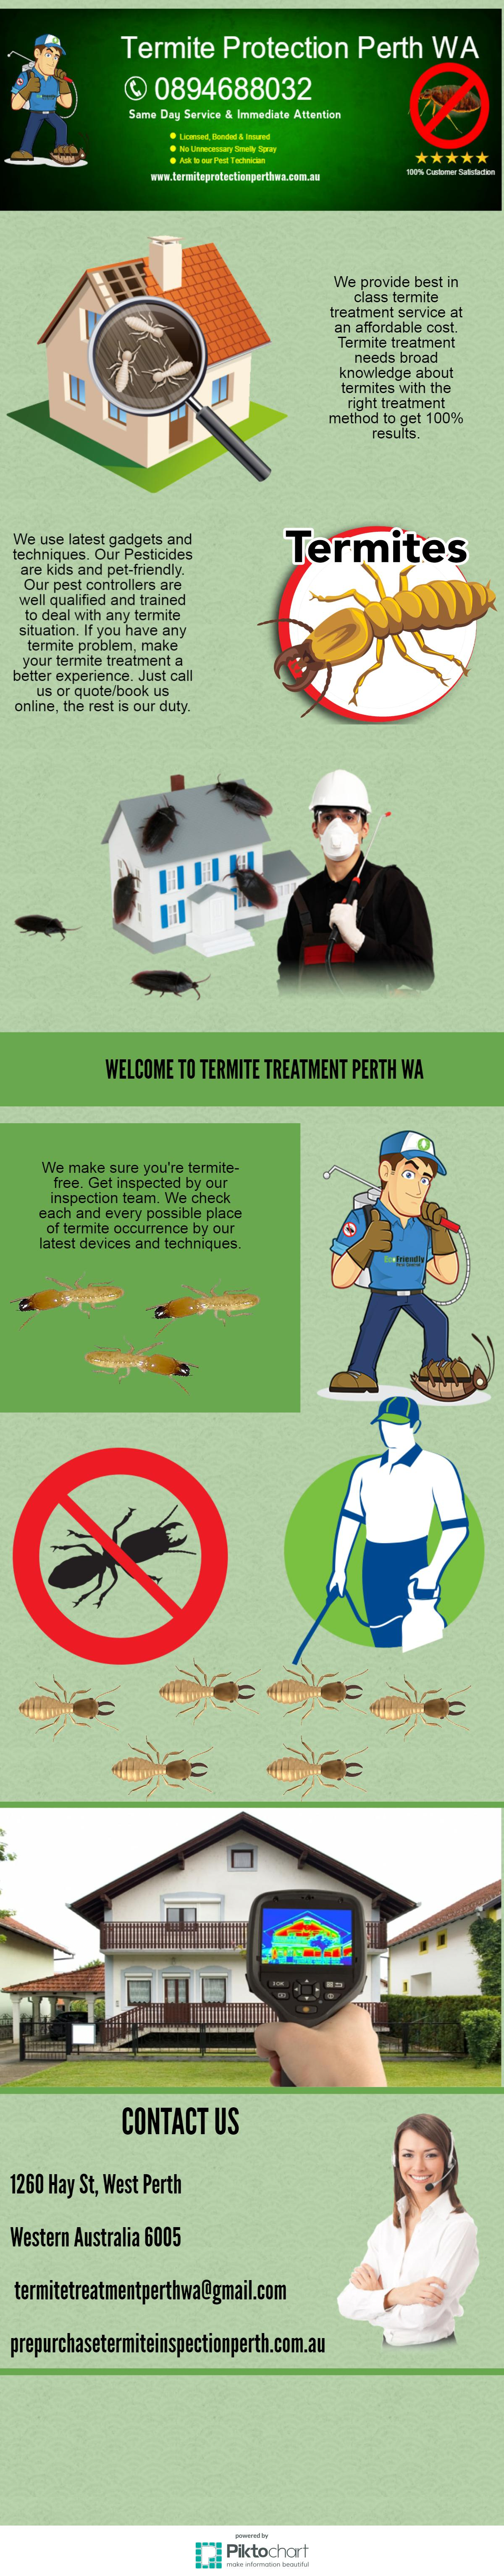 To make your house termitefree,